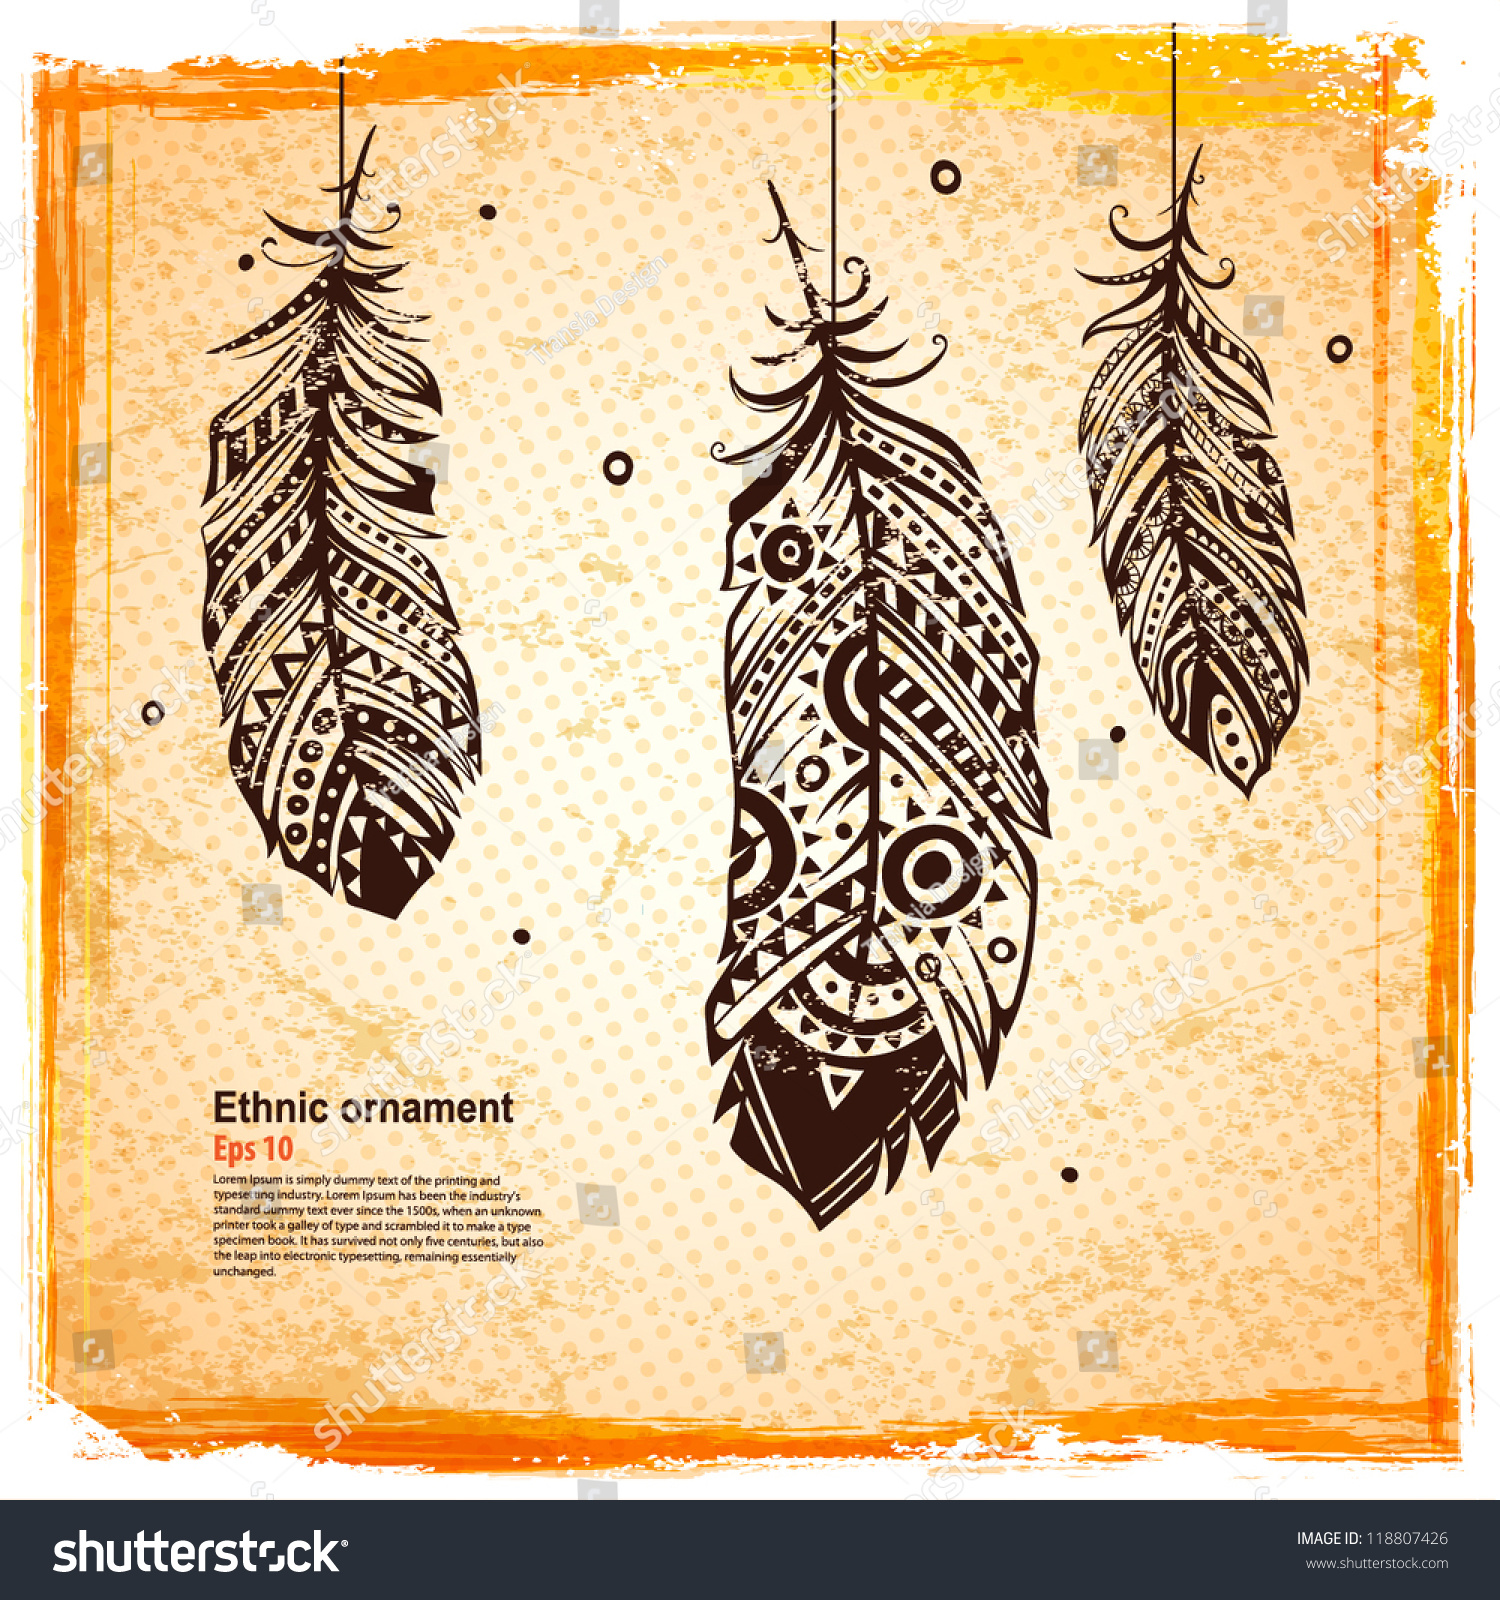 Vintage feather illustration your greeting card stock vector vintage feather illustration for your greeting card ot fabric print m4hsunfo